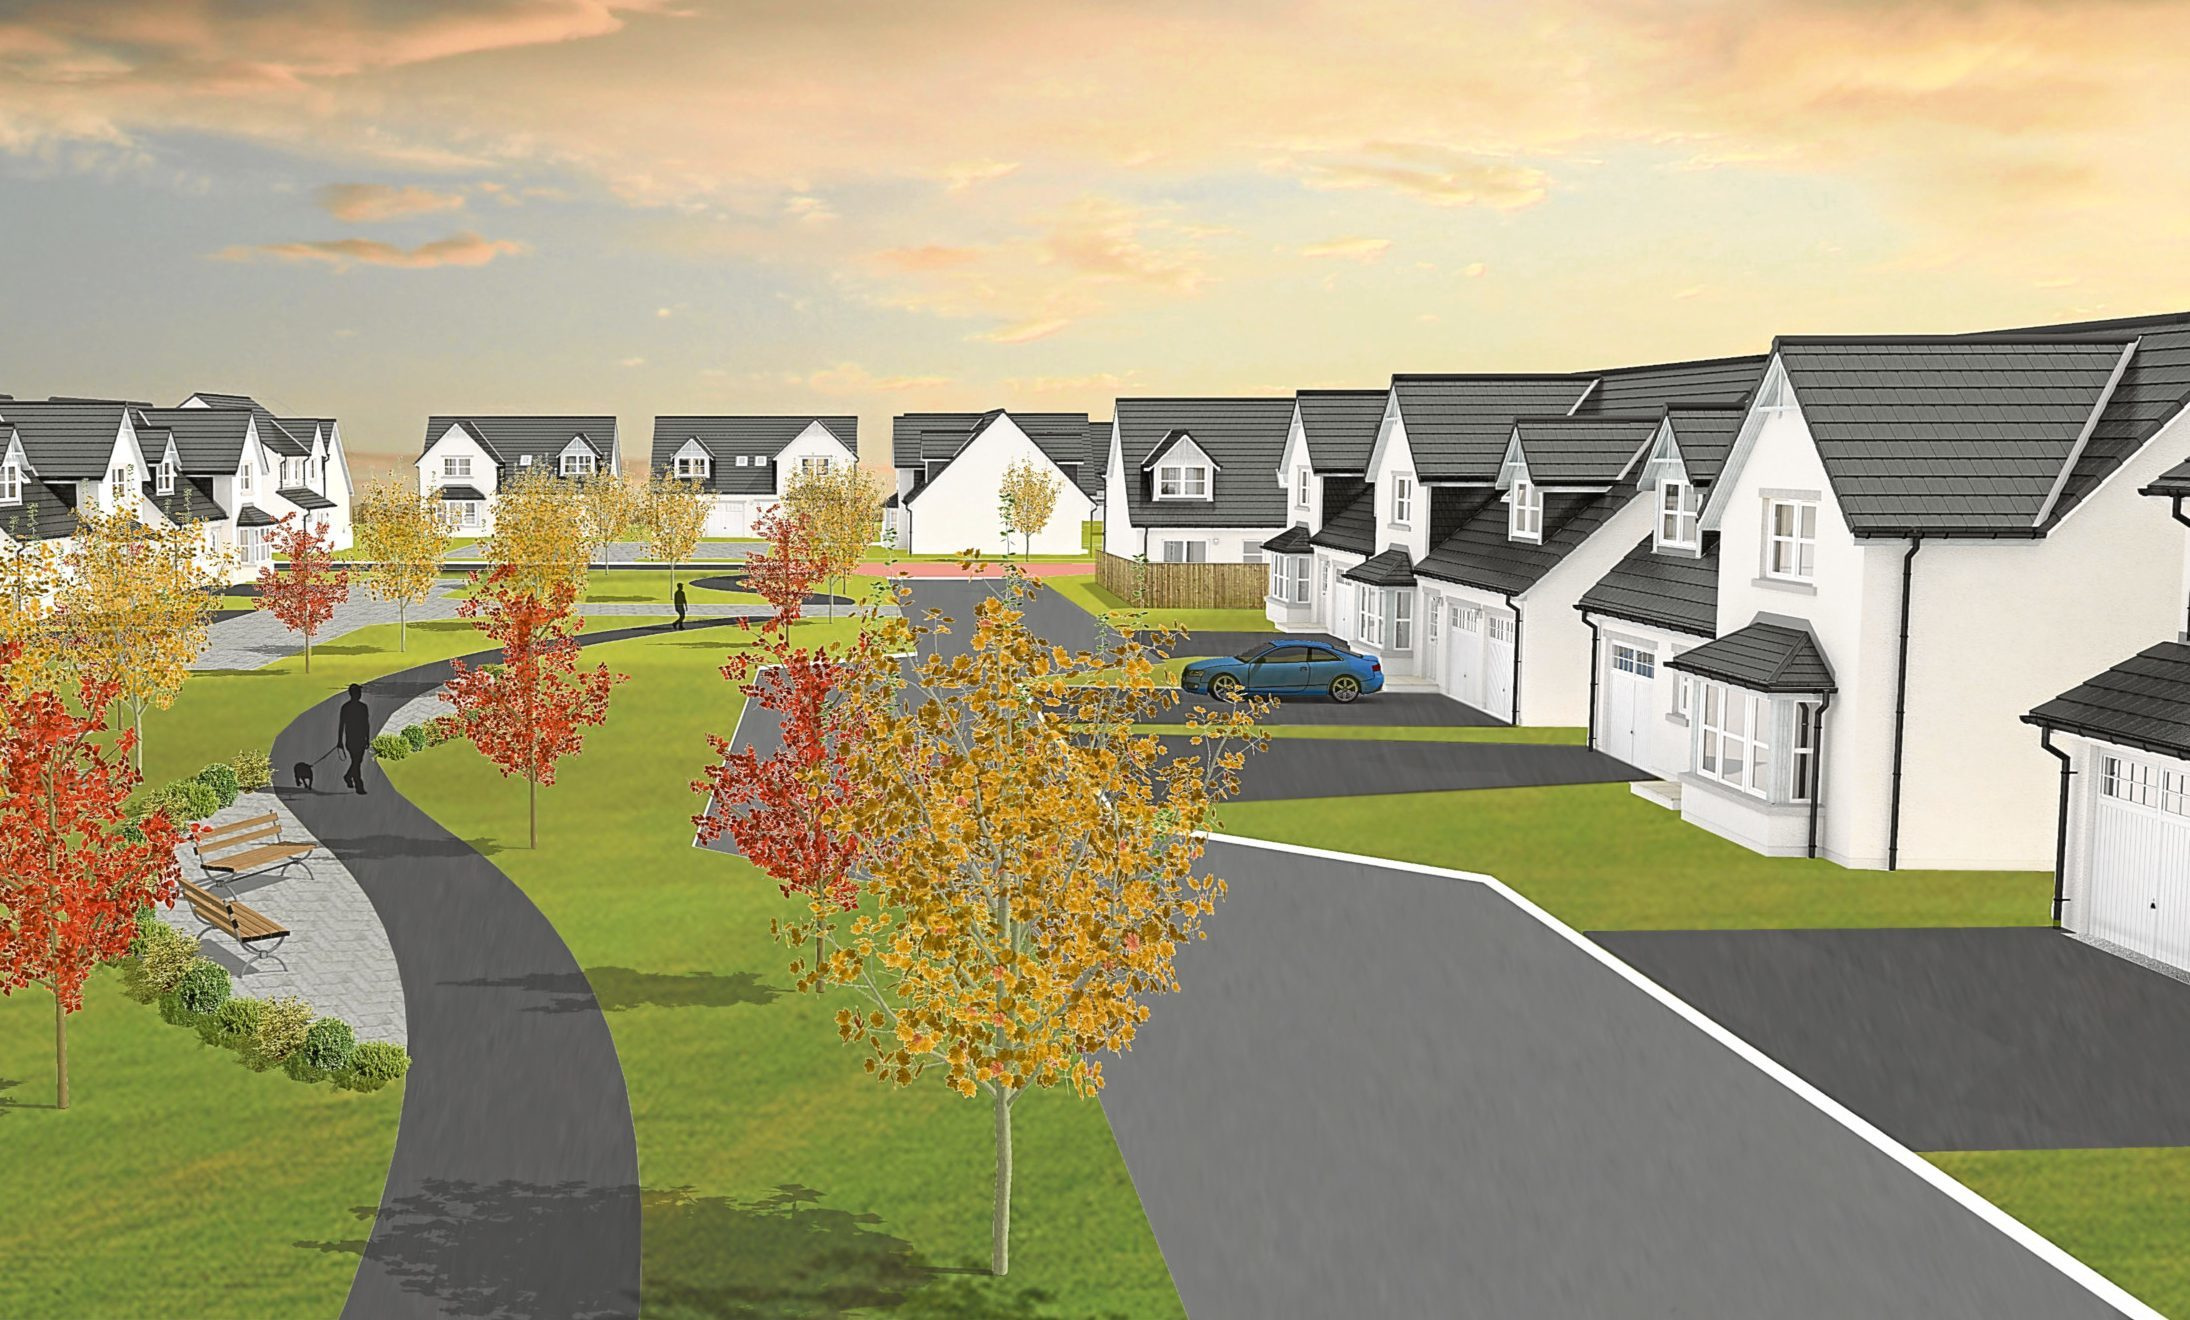 An image of how the homes would look if the project is given the go-ahead